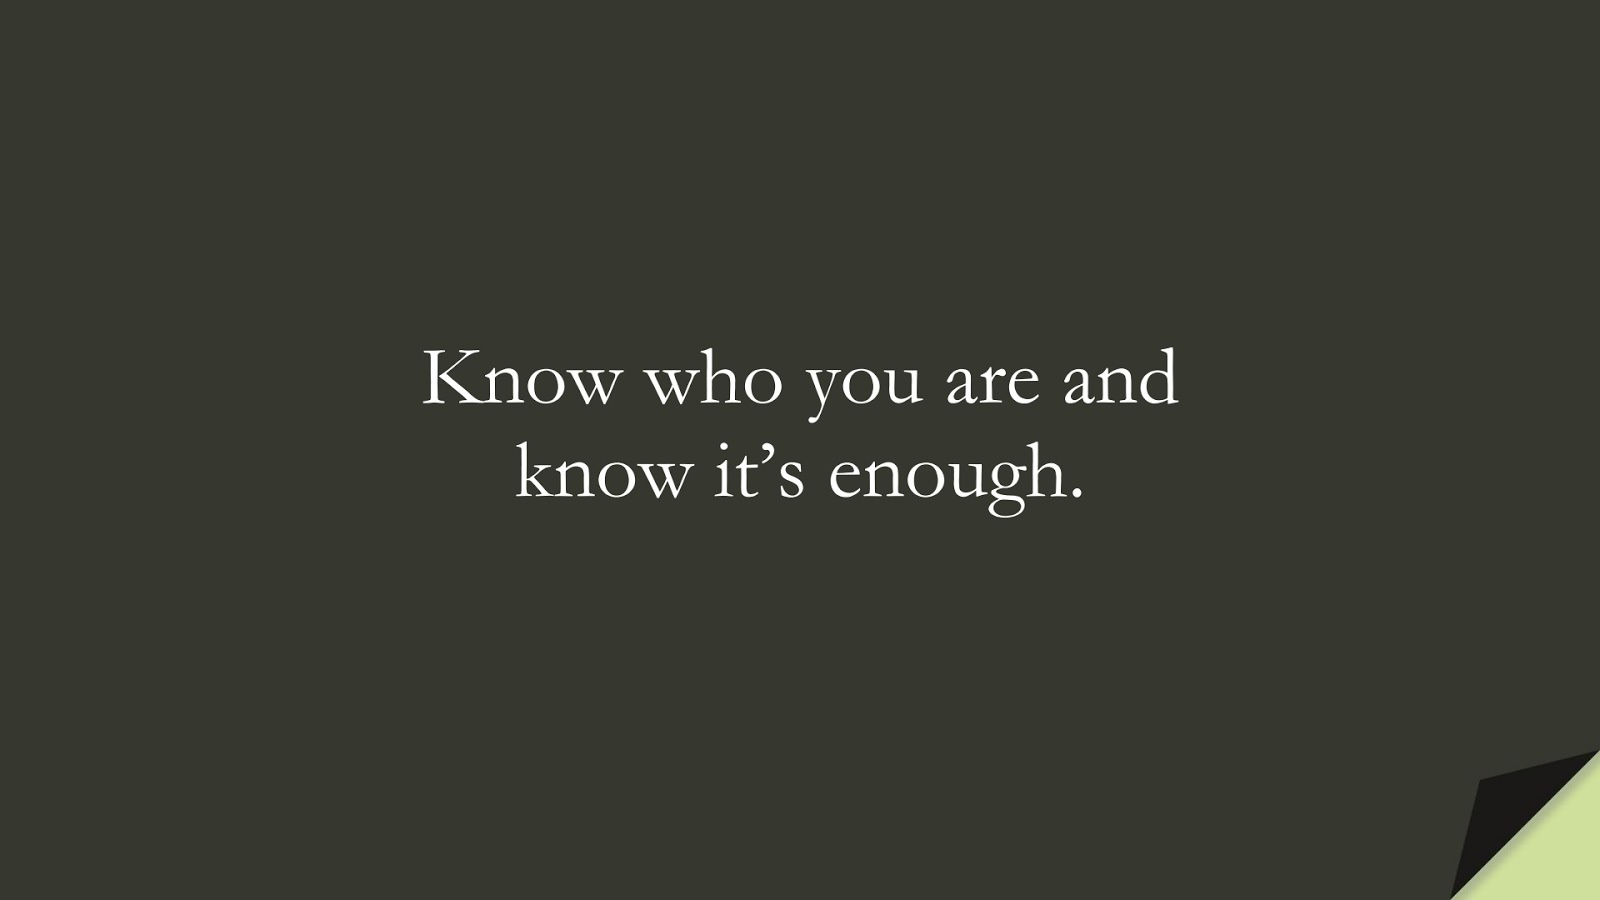 Know who you are and know it's enough.FALSE